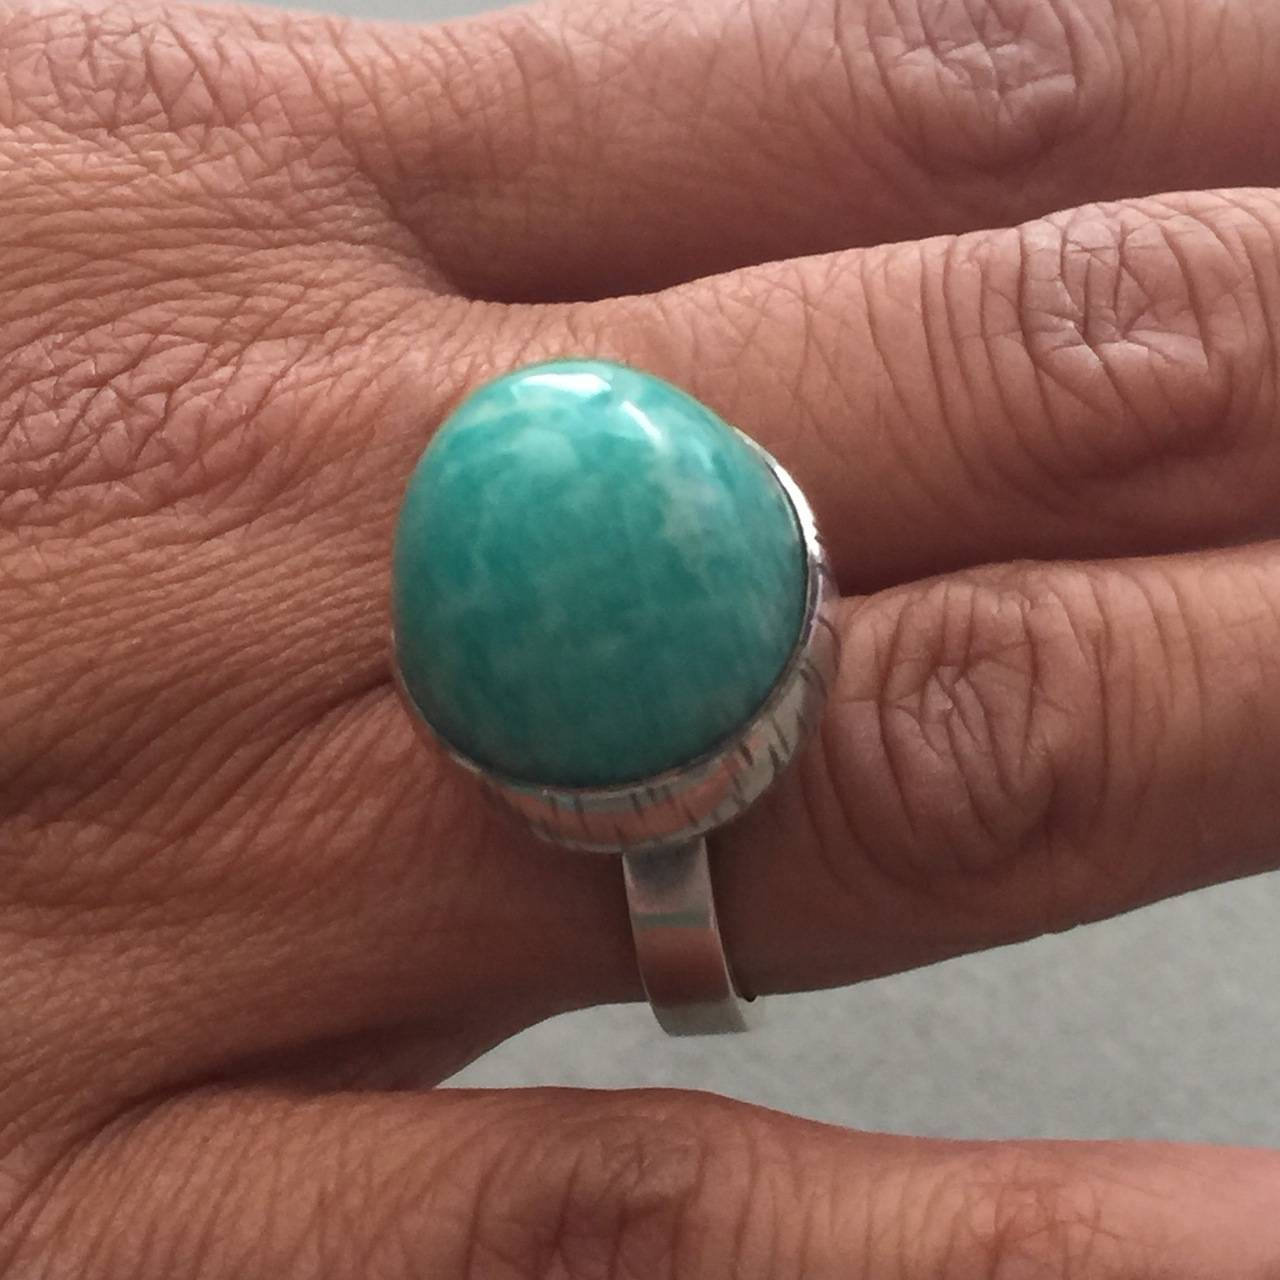 amazonite rings fine images gems vieraflorida brevardcounty a pinterest wearing oneill aniston weschejewelers jewelry jennifer ring best on dabakarov